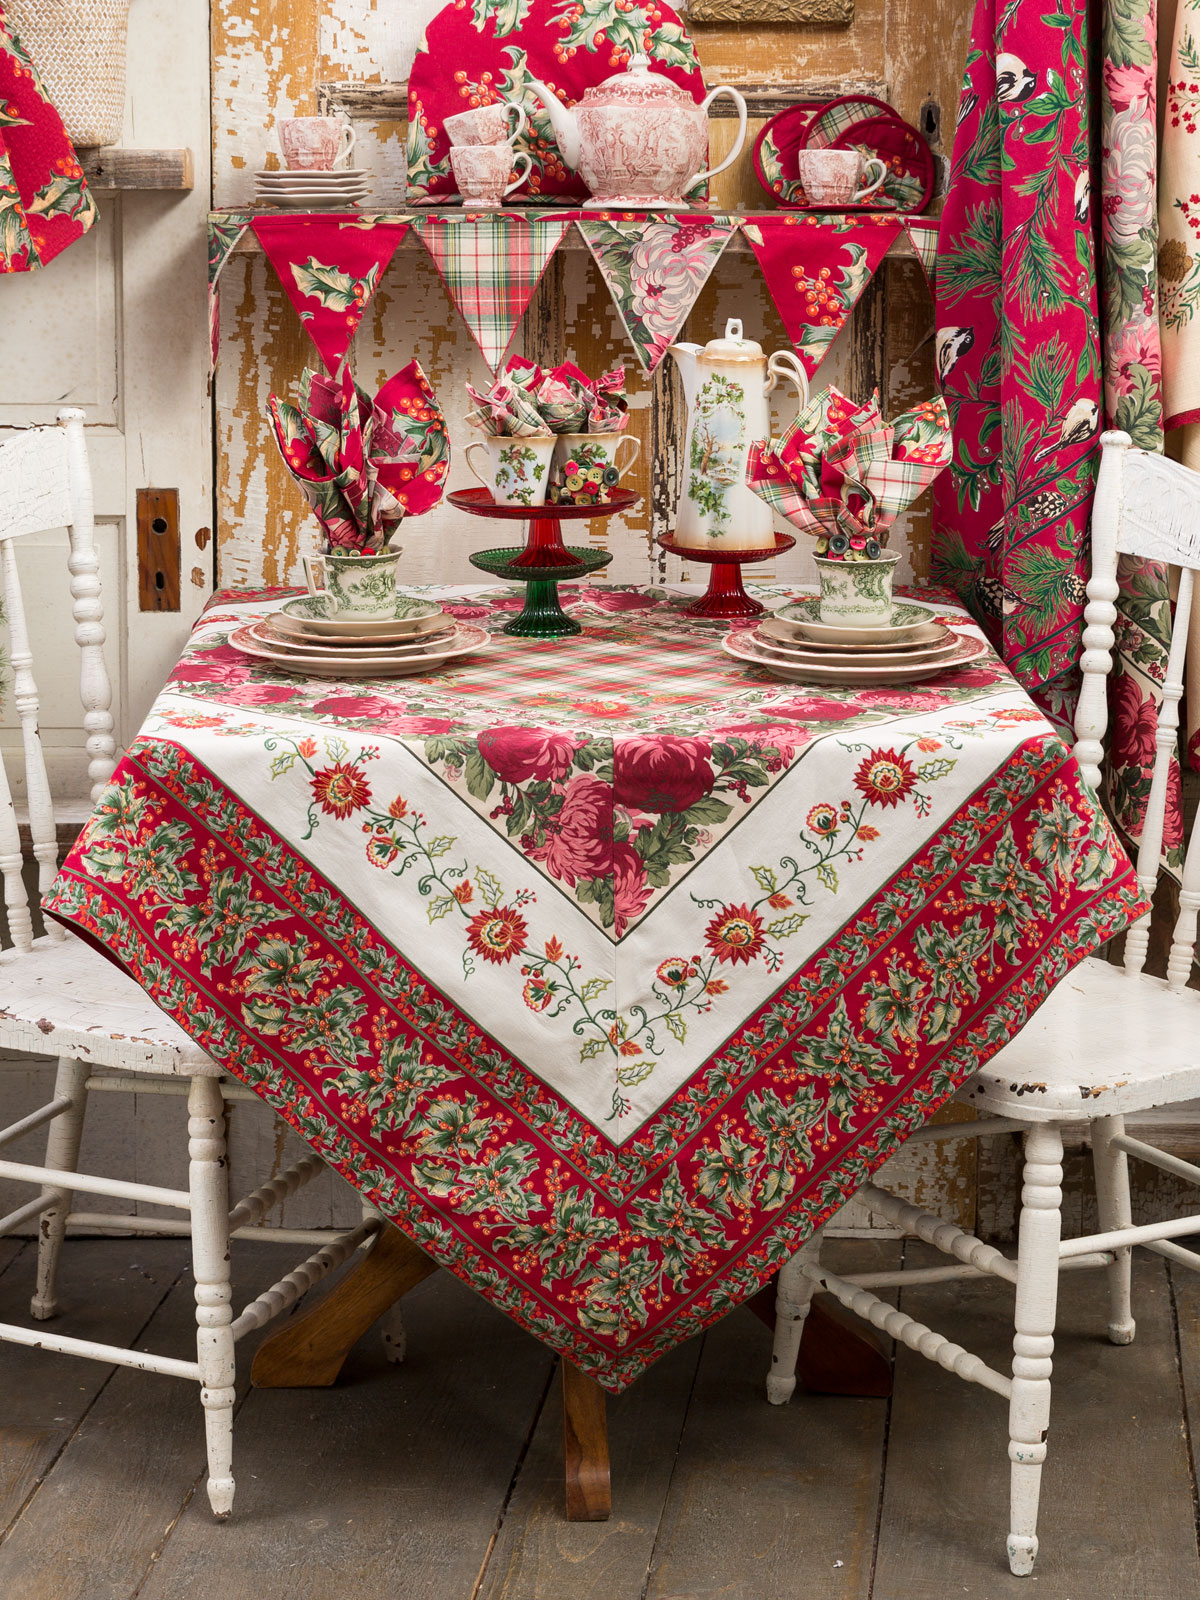 Tischdecken Weihnachten Christmas Patchwork Tablecloth | Attic Sale, Linens